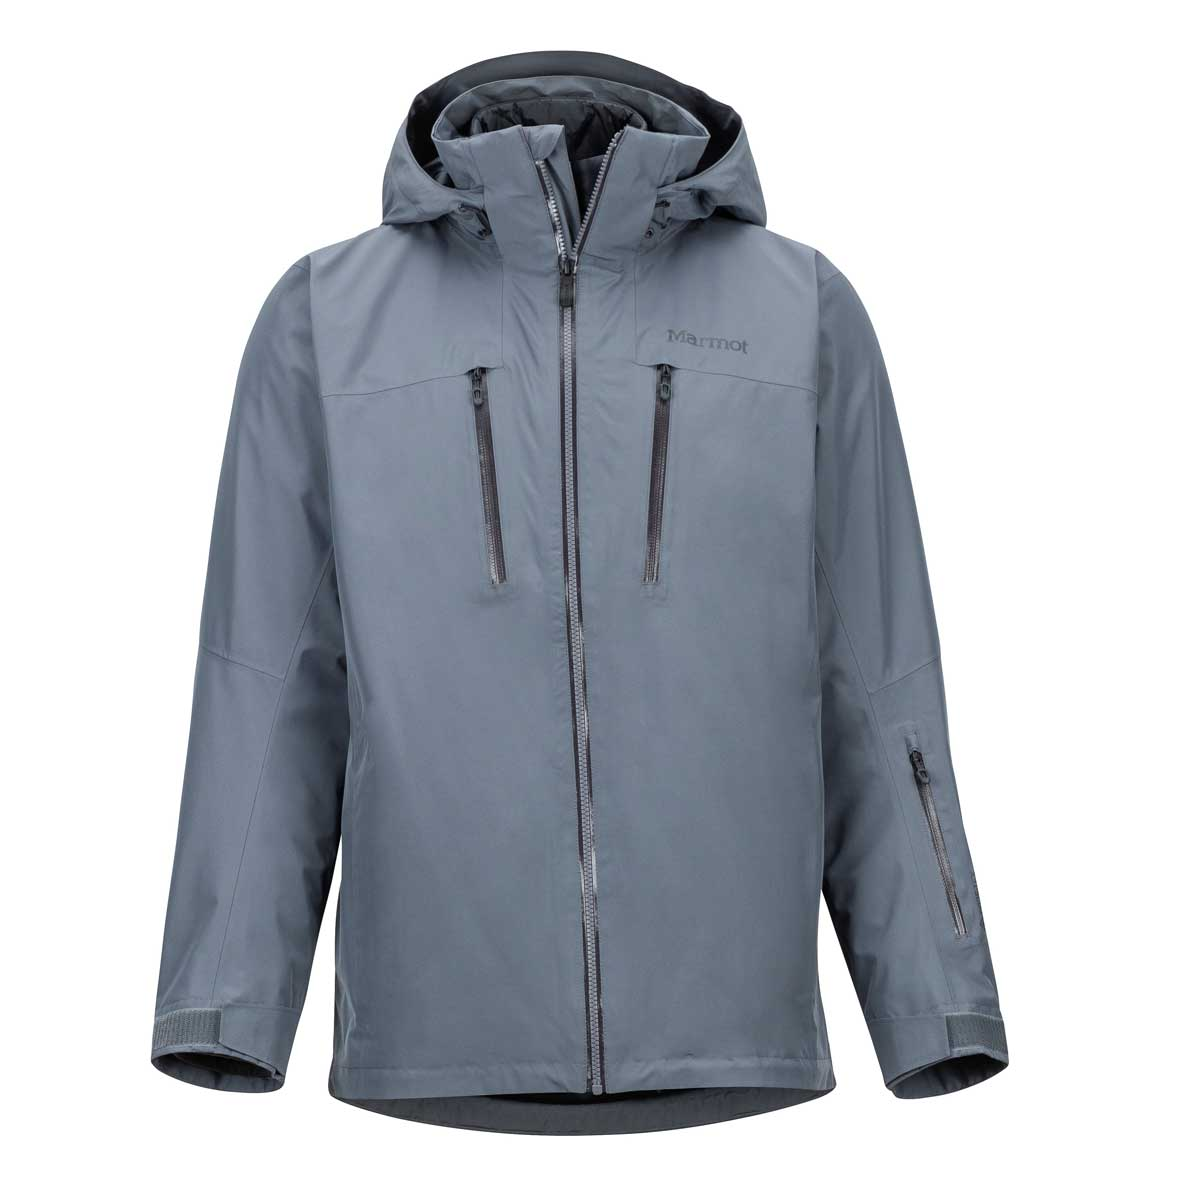 Marmot Men's KT Component Jacket in Steel Onyx